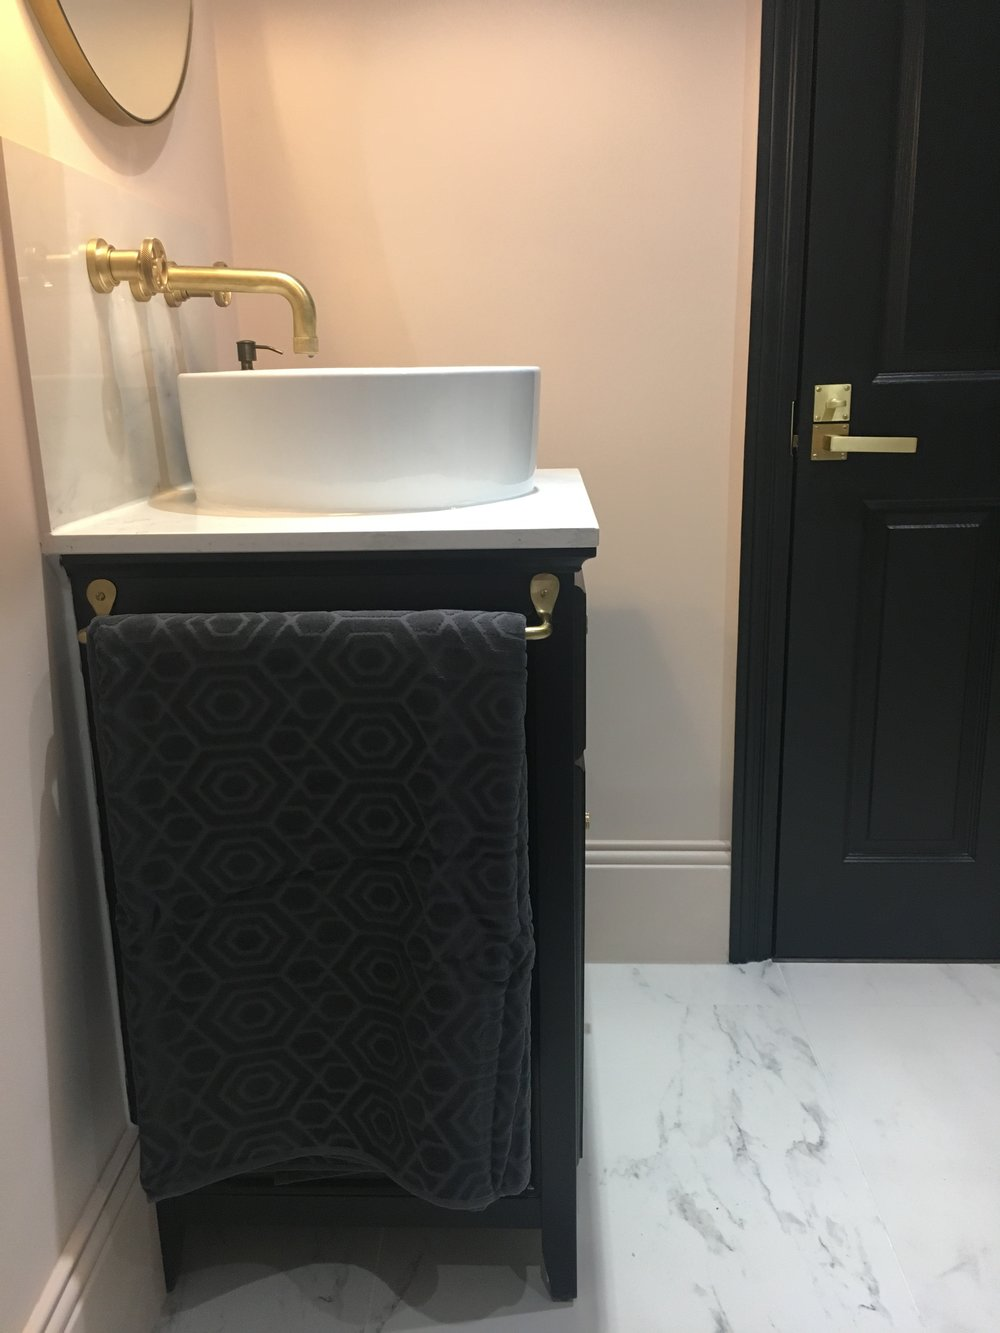 Farrow and ball pink ground and railings marble  bathroom